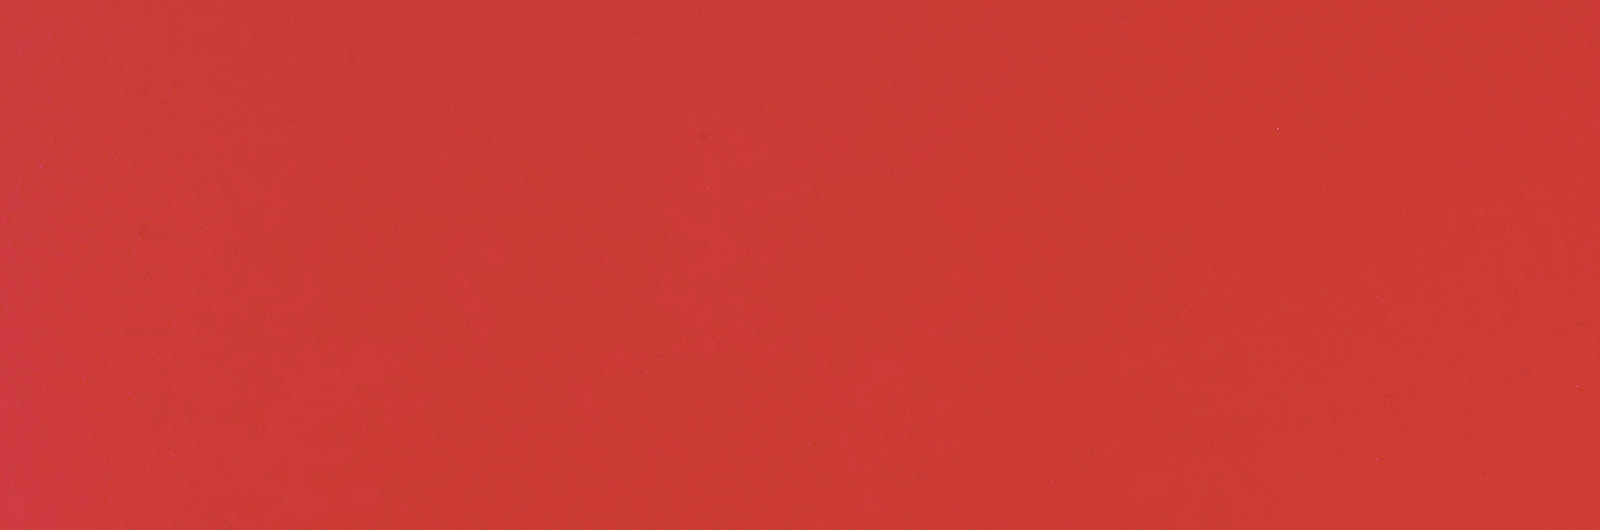 digital-perspective-unicolor-dynamic-red1